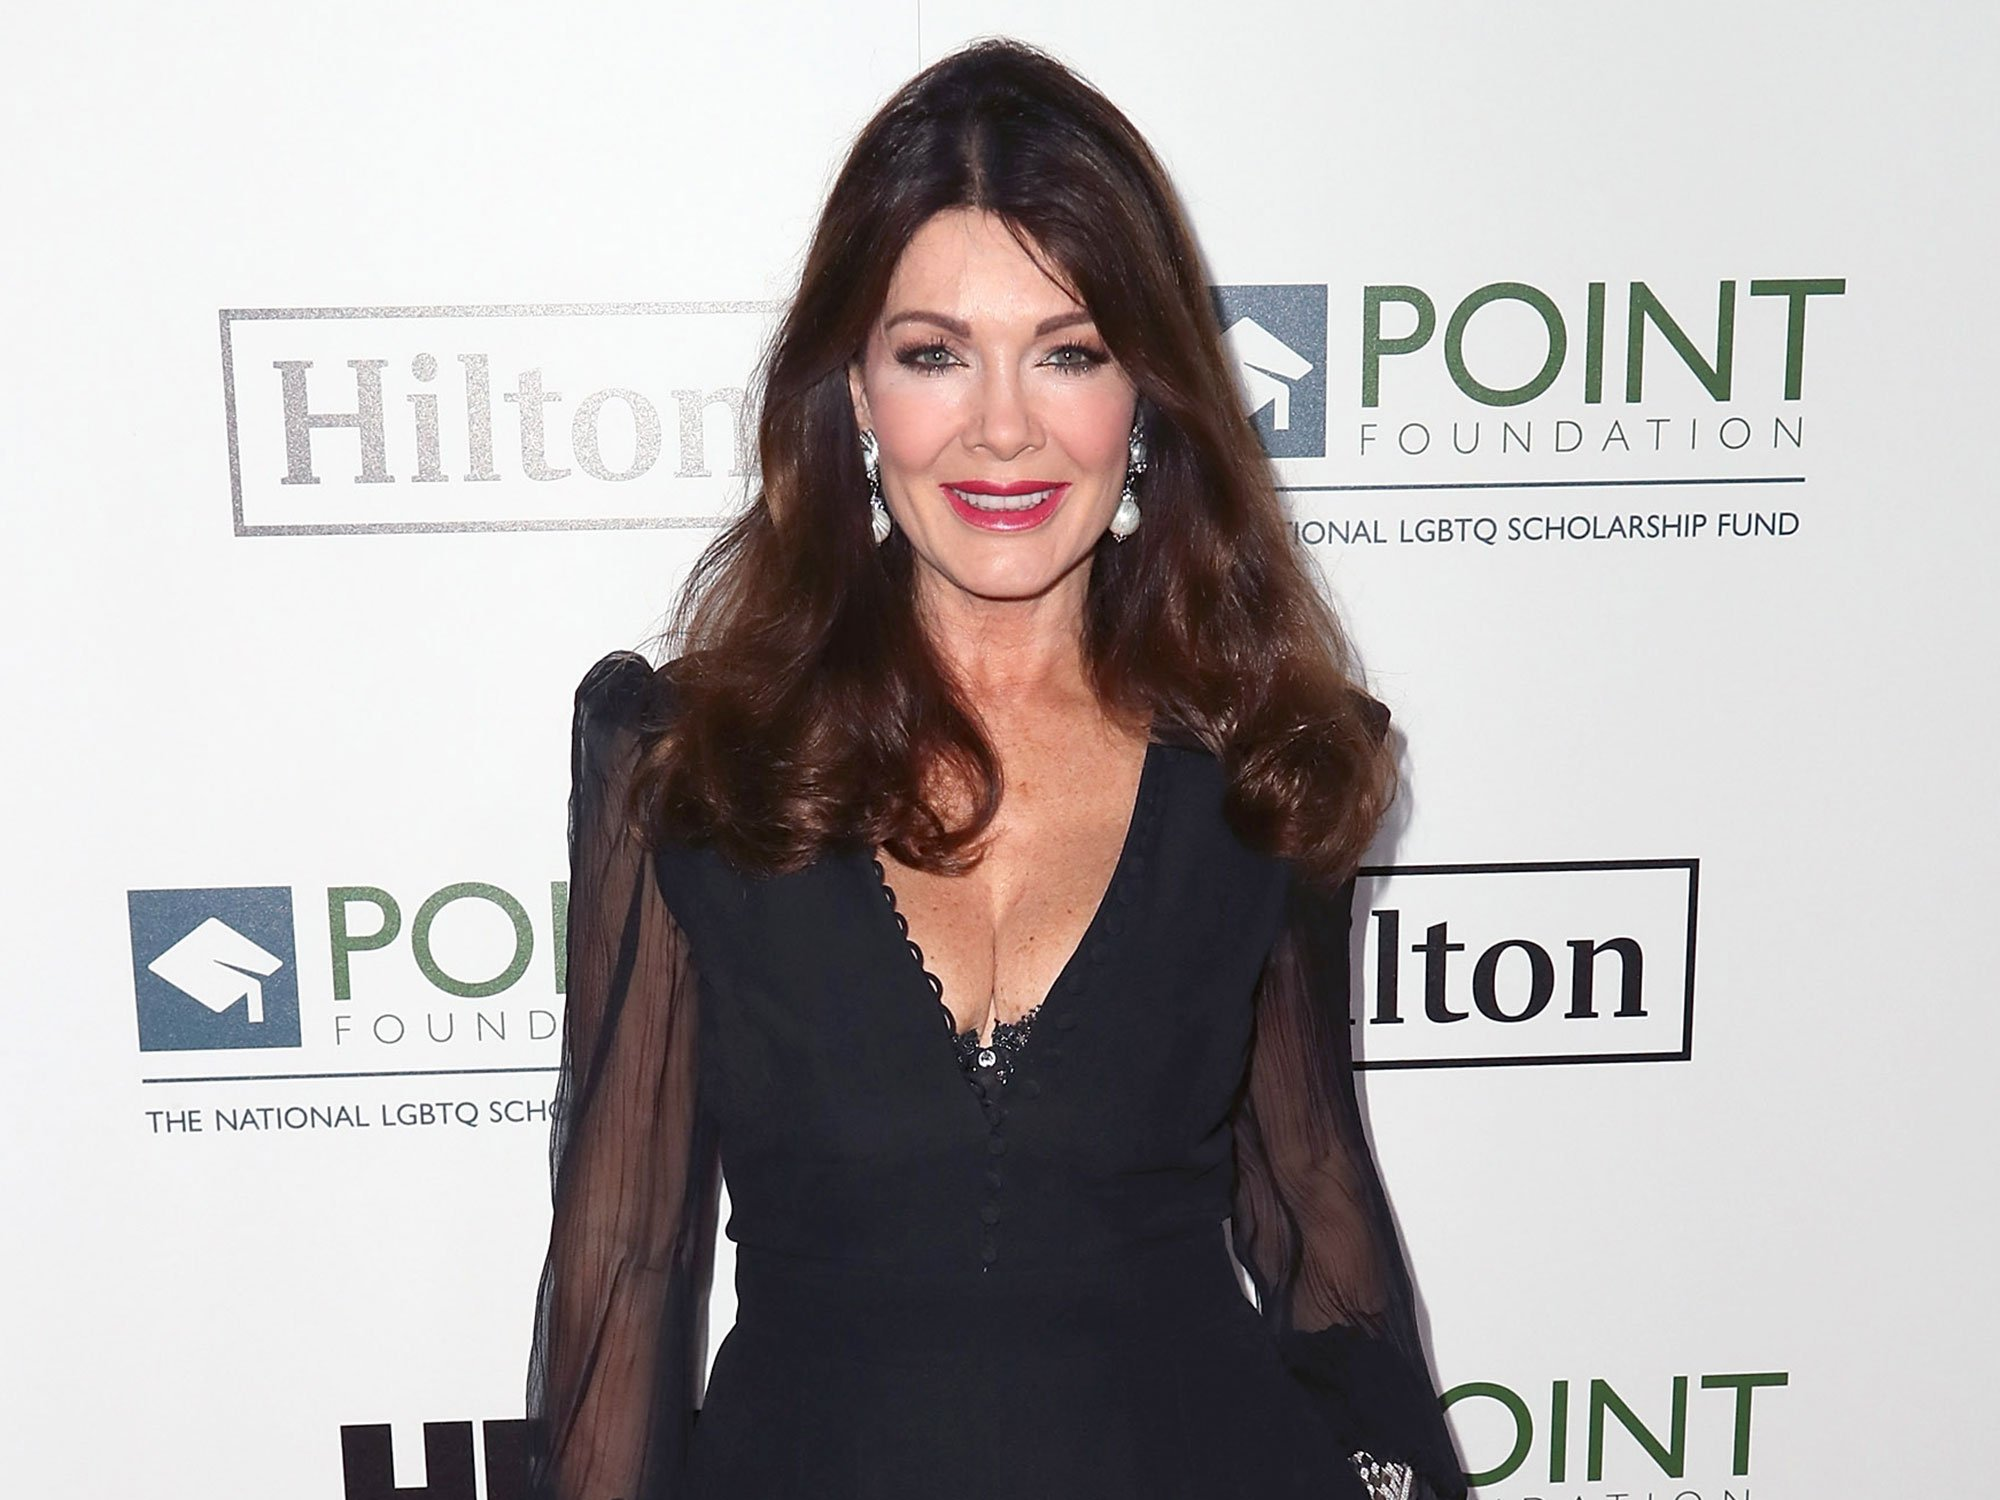 Lisa Vanderpump Reveals She Doesn't Have a Credit Card: 'I Would Never Pay the Bills'